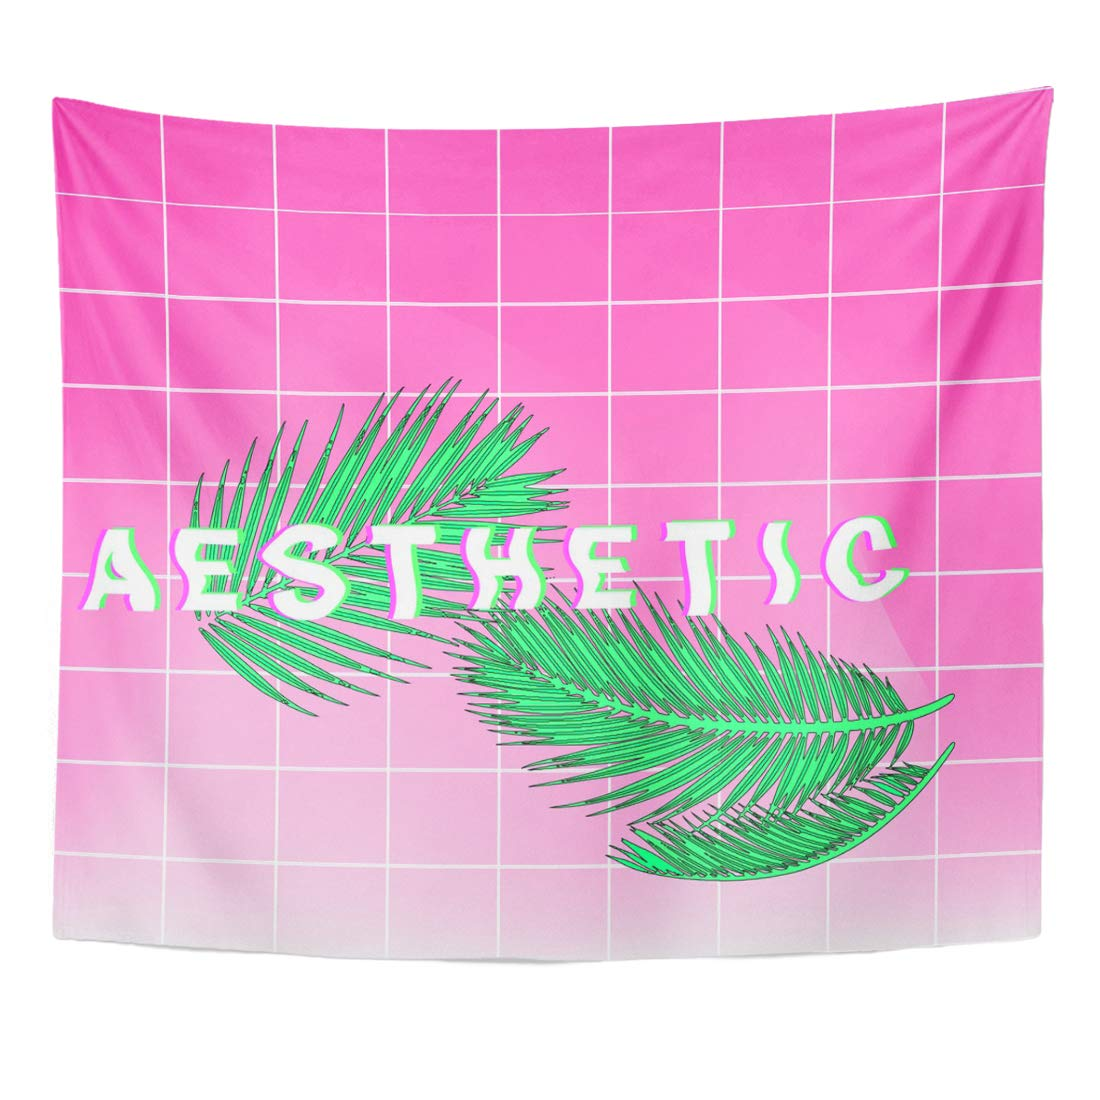 Zealgned Vaporwave Synthwave Glitch Aesthetic Hype Cute Pastel Colors Bright Gradient Pearly Neon Pop Wall Art Hanging Tapestry Home Decor For Living Room Bedroom Dorm 60x80 Inch Walmart Com Walmart Com